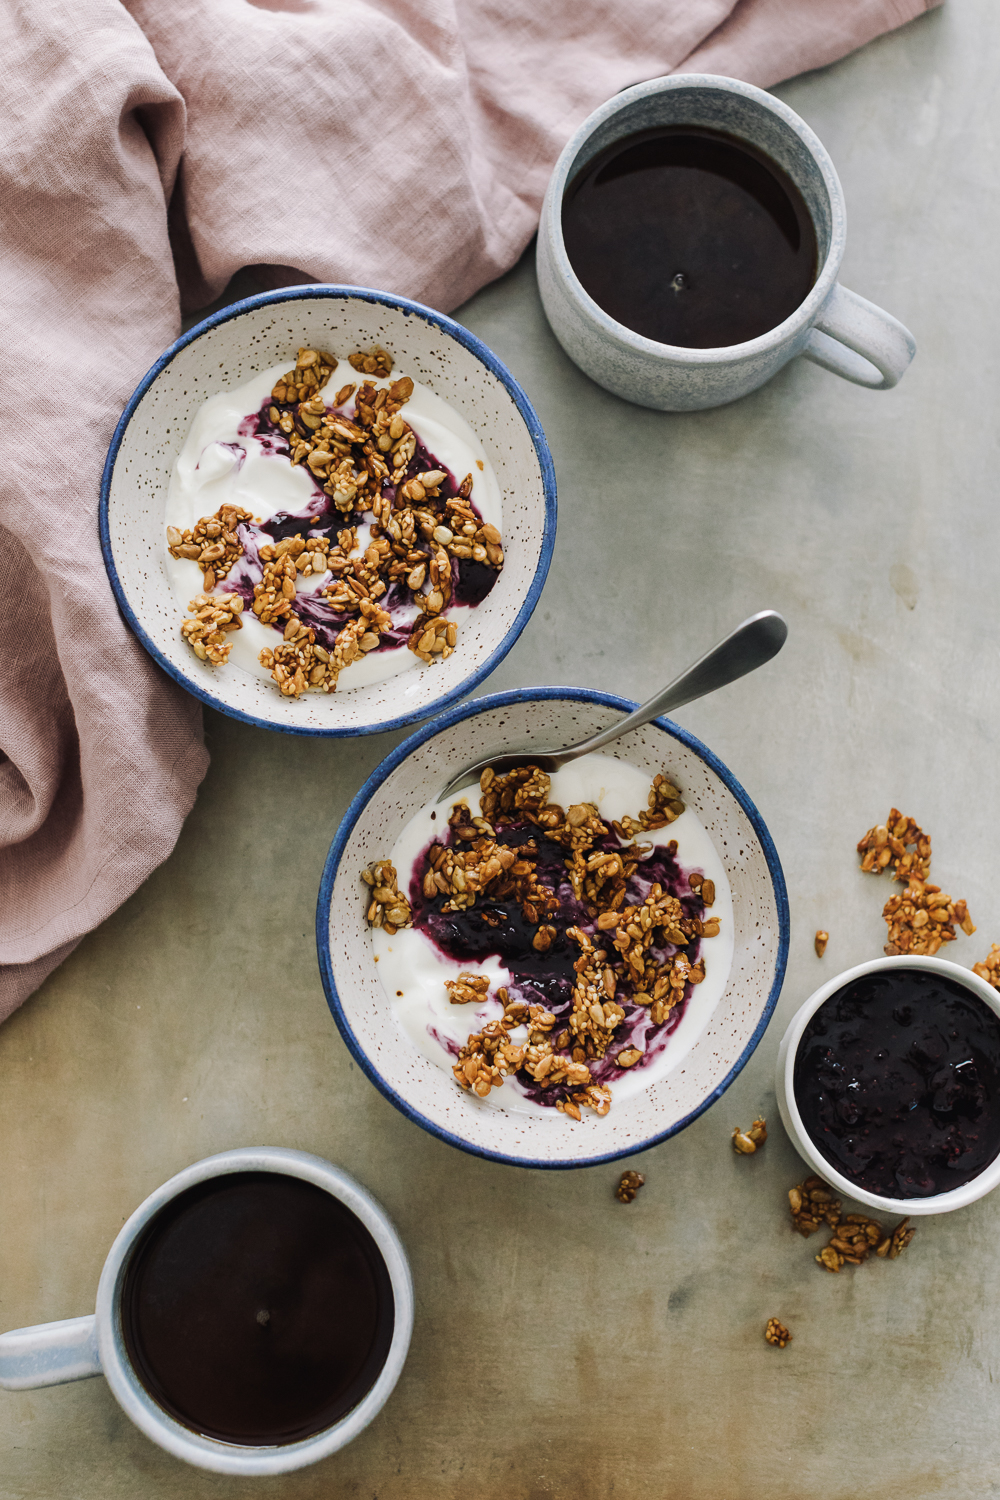 Blueberry Chia Jam with Yogurt and Sunflower Crunch